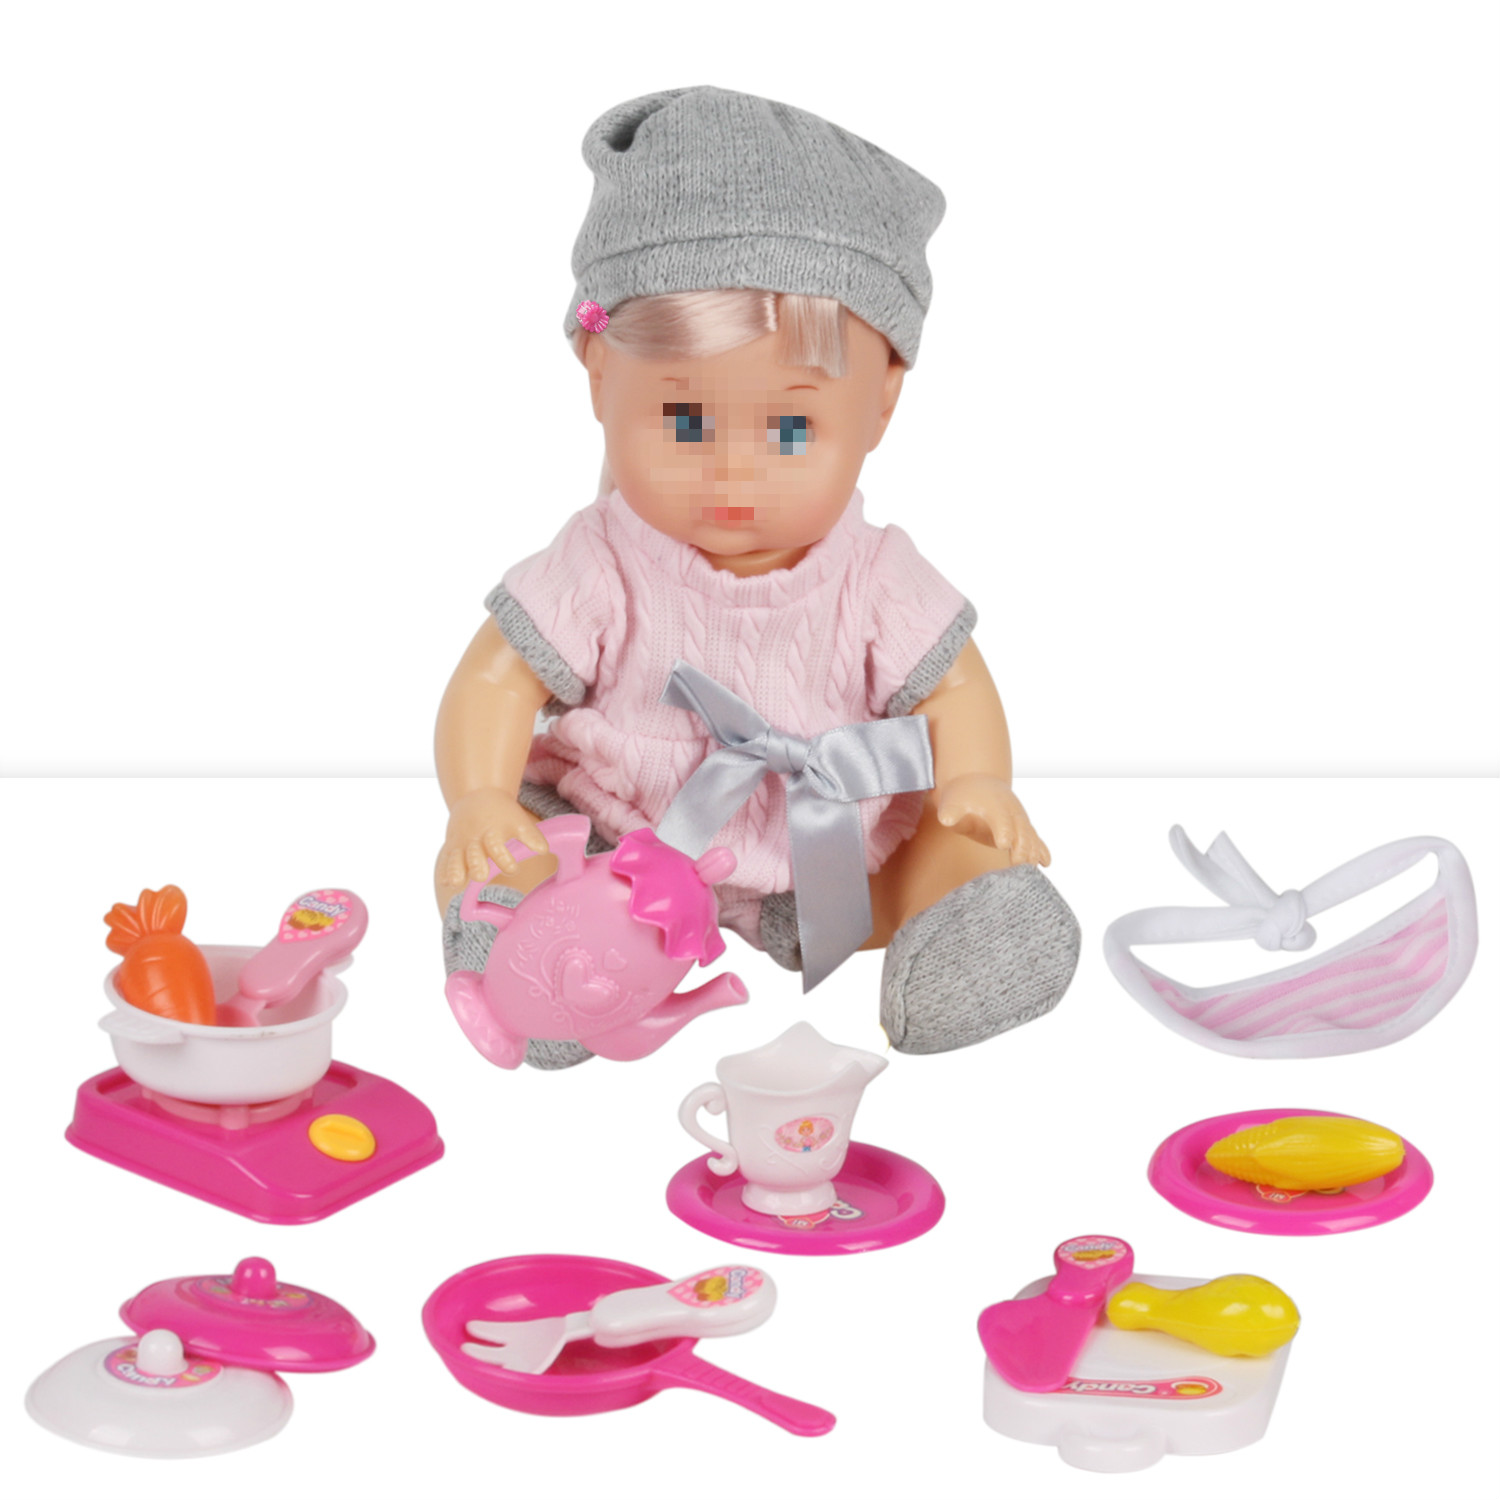 Huang Cheng Toys Doll and Parts with Clothes for 12 Inch Kitchen Appliances Play Doctor Baby Girl Gifts Kid